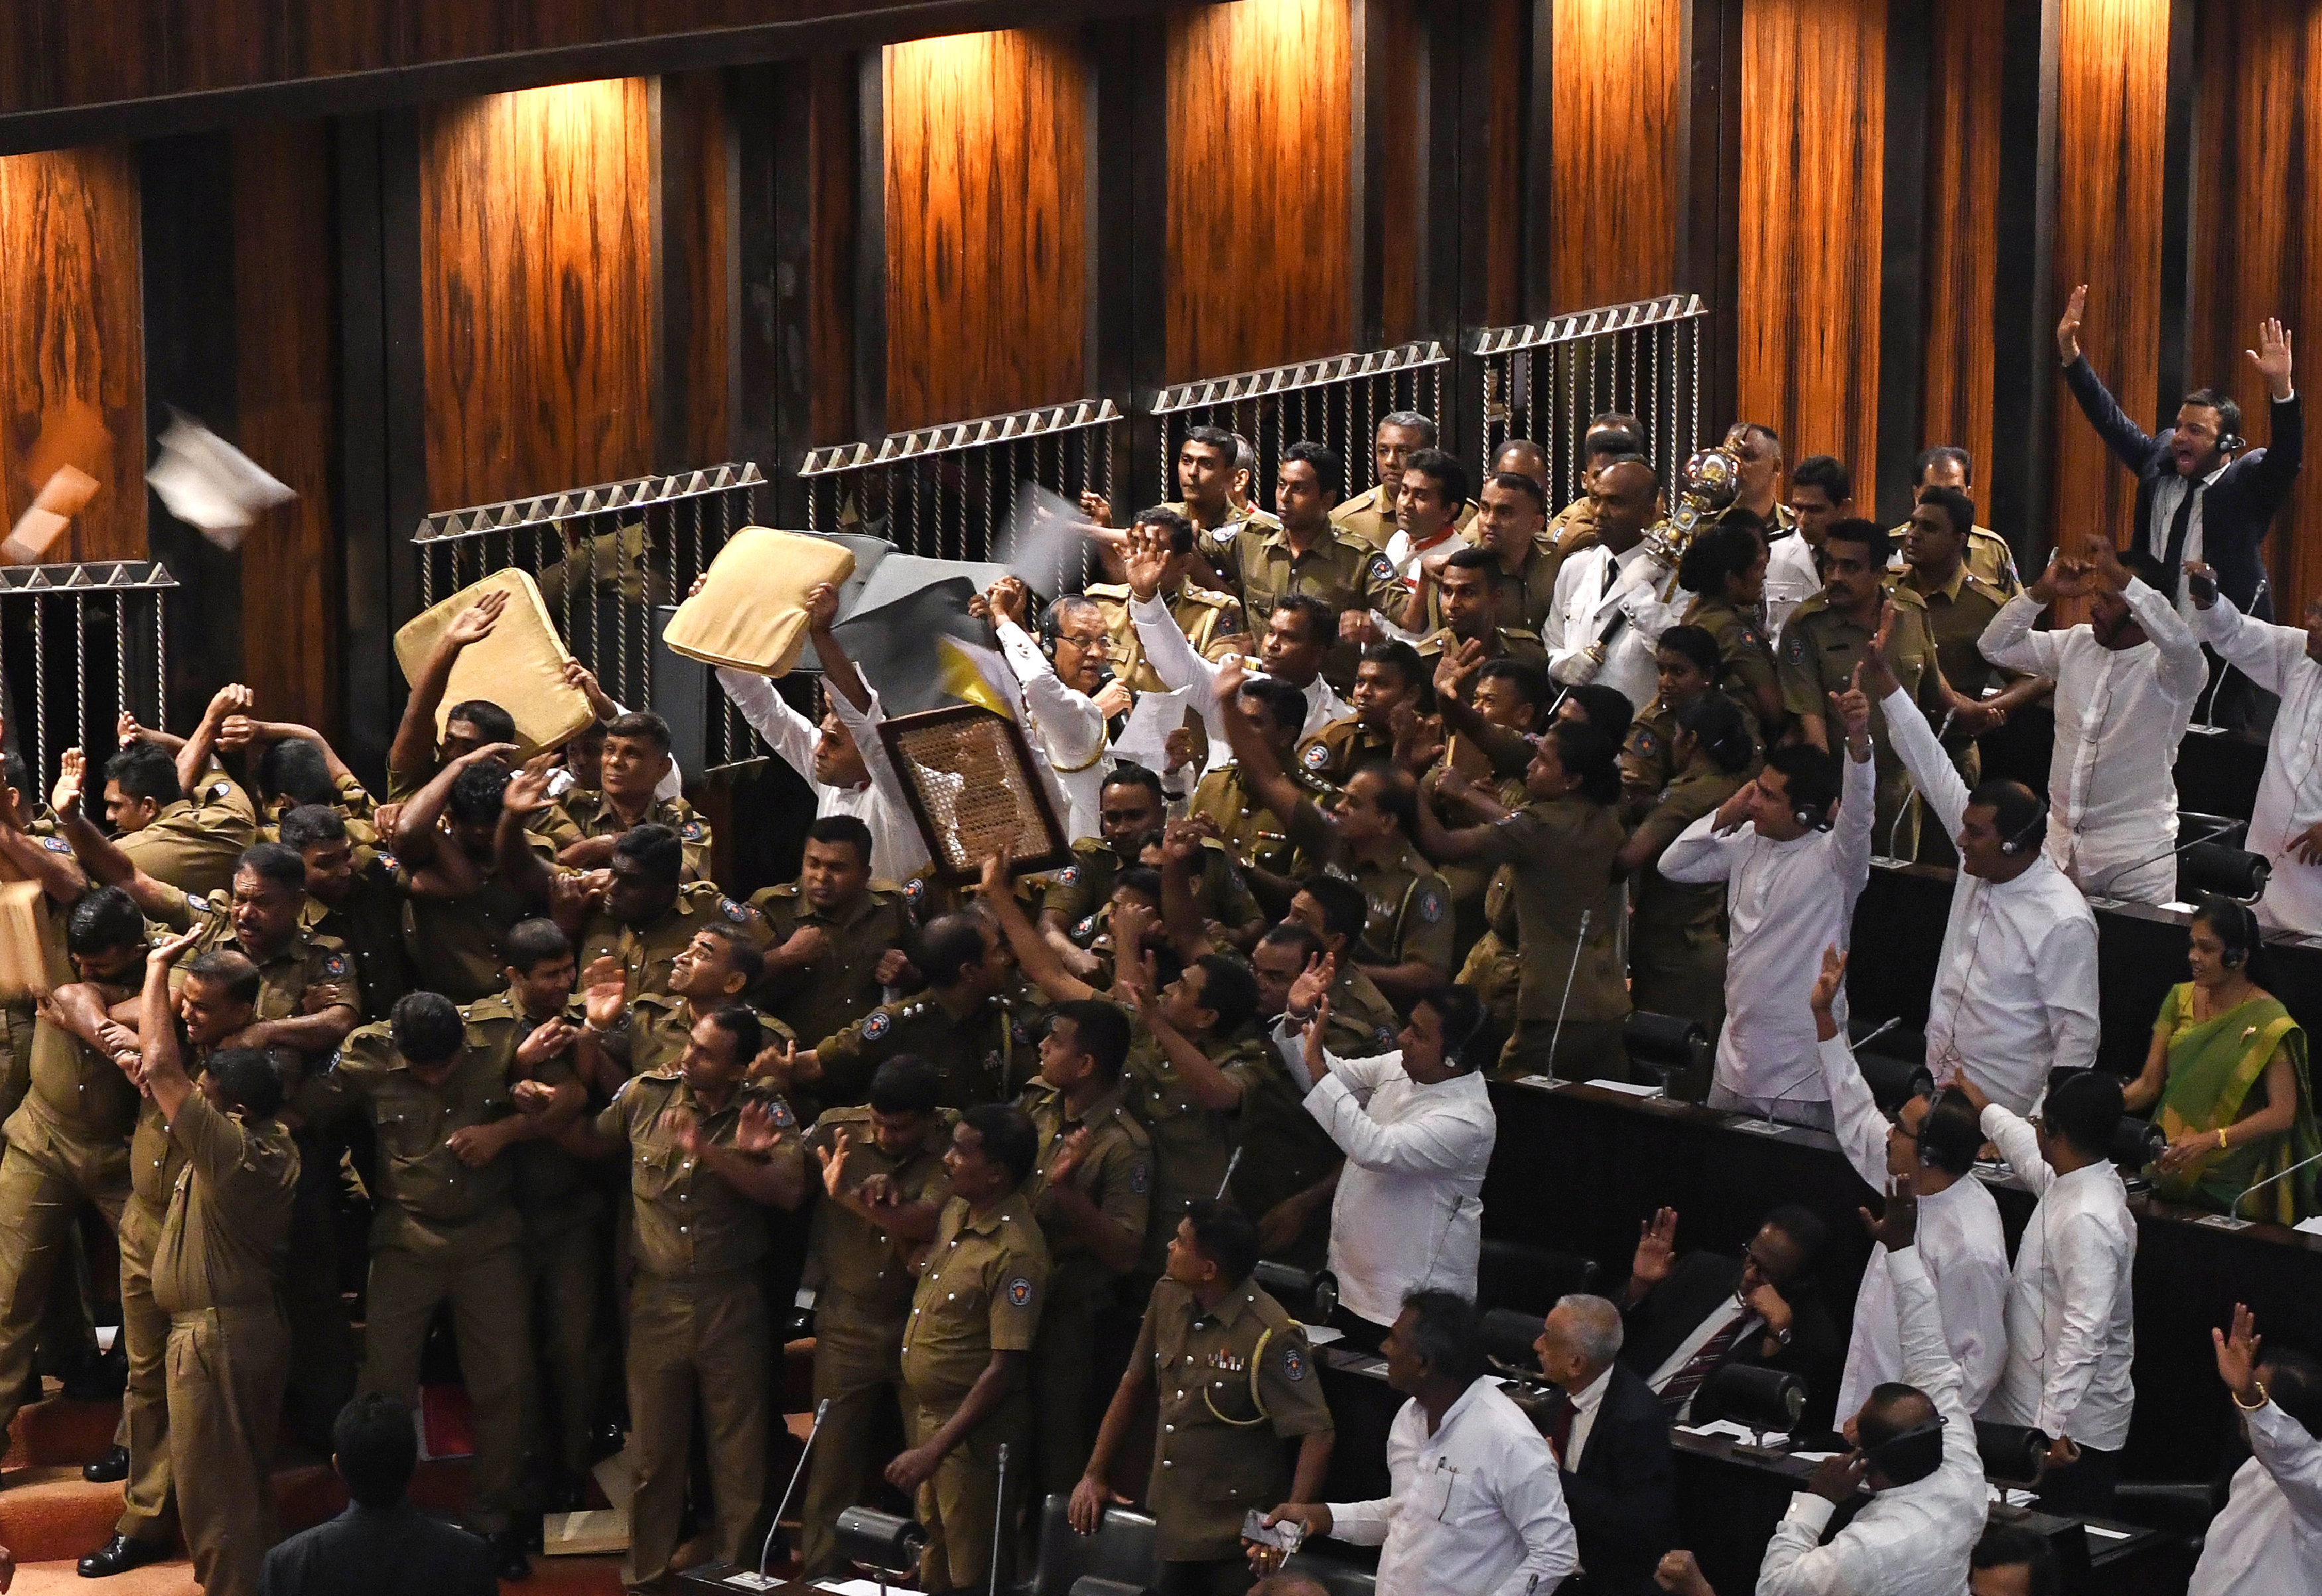 Sri Lankan police escort parliament speaker Karu Jayasuriya (C holding microphone) as aides hold up cushions to protect him and themselves from projectiles thrown by rival legislators in the assembly hall in Colombo on November 16, 2018